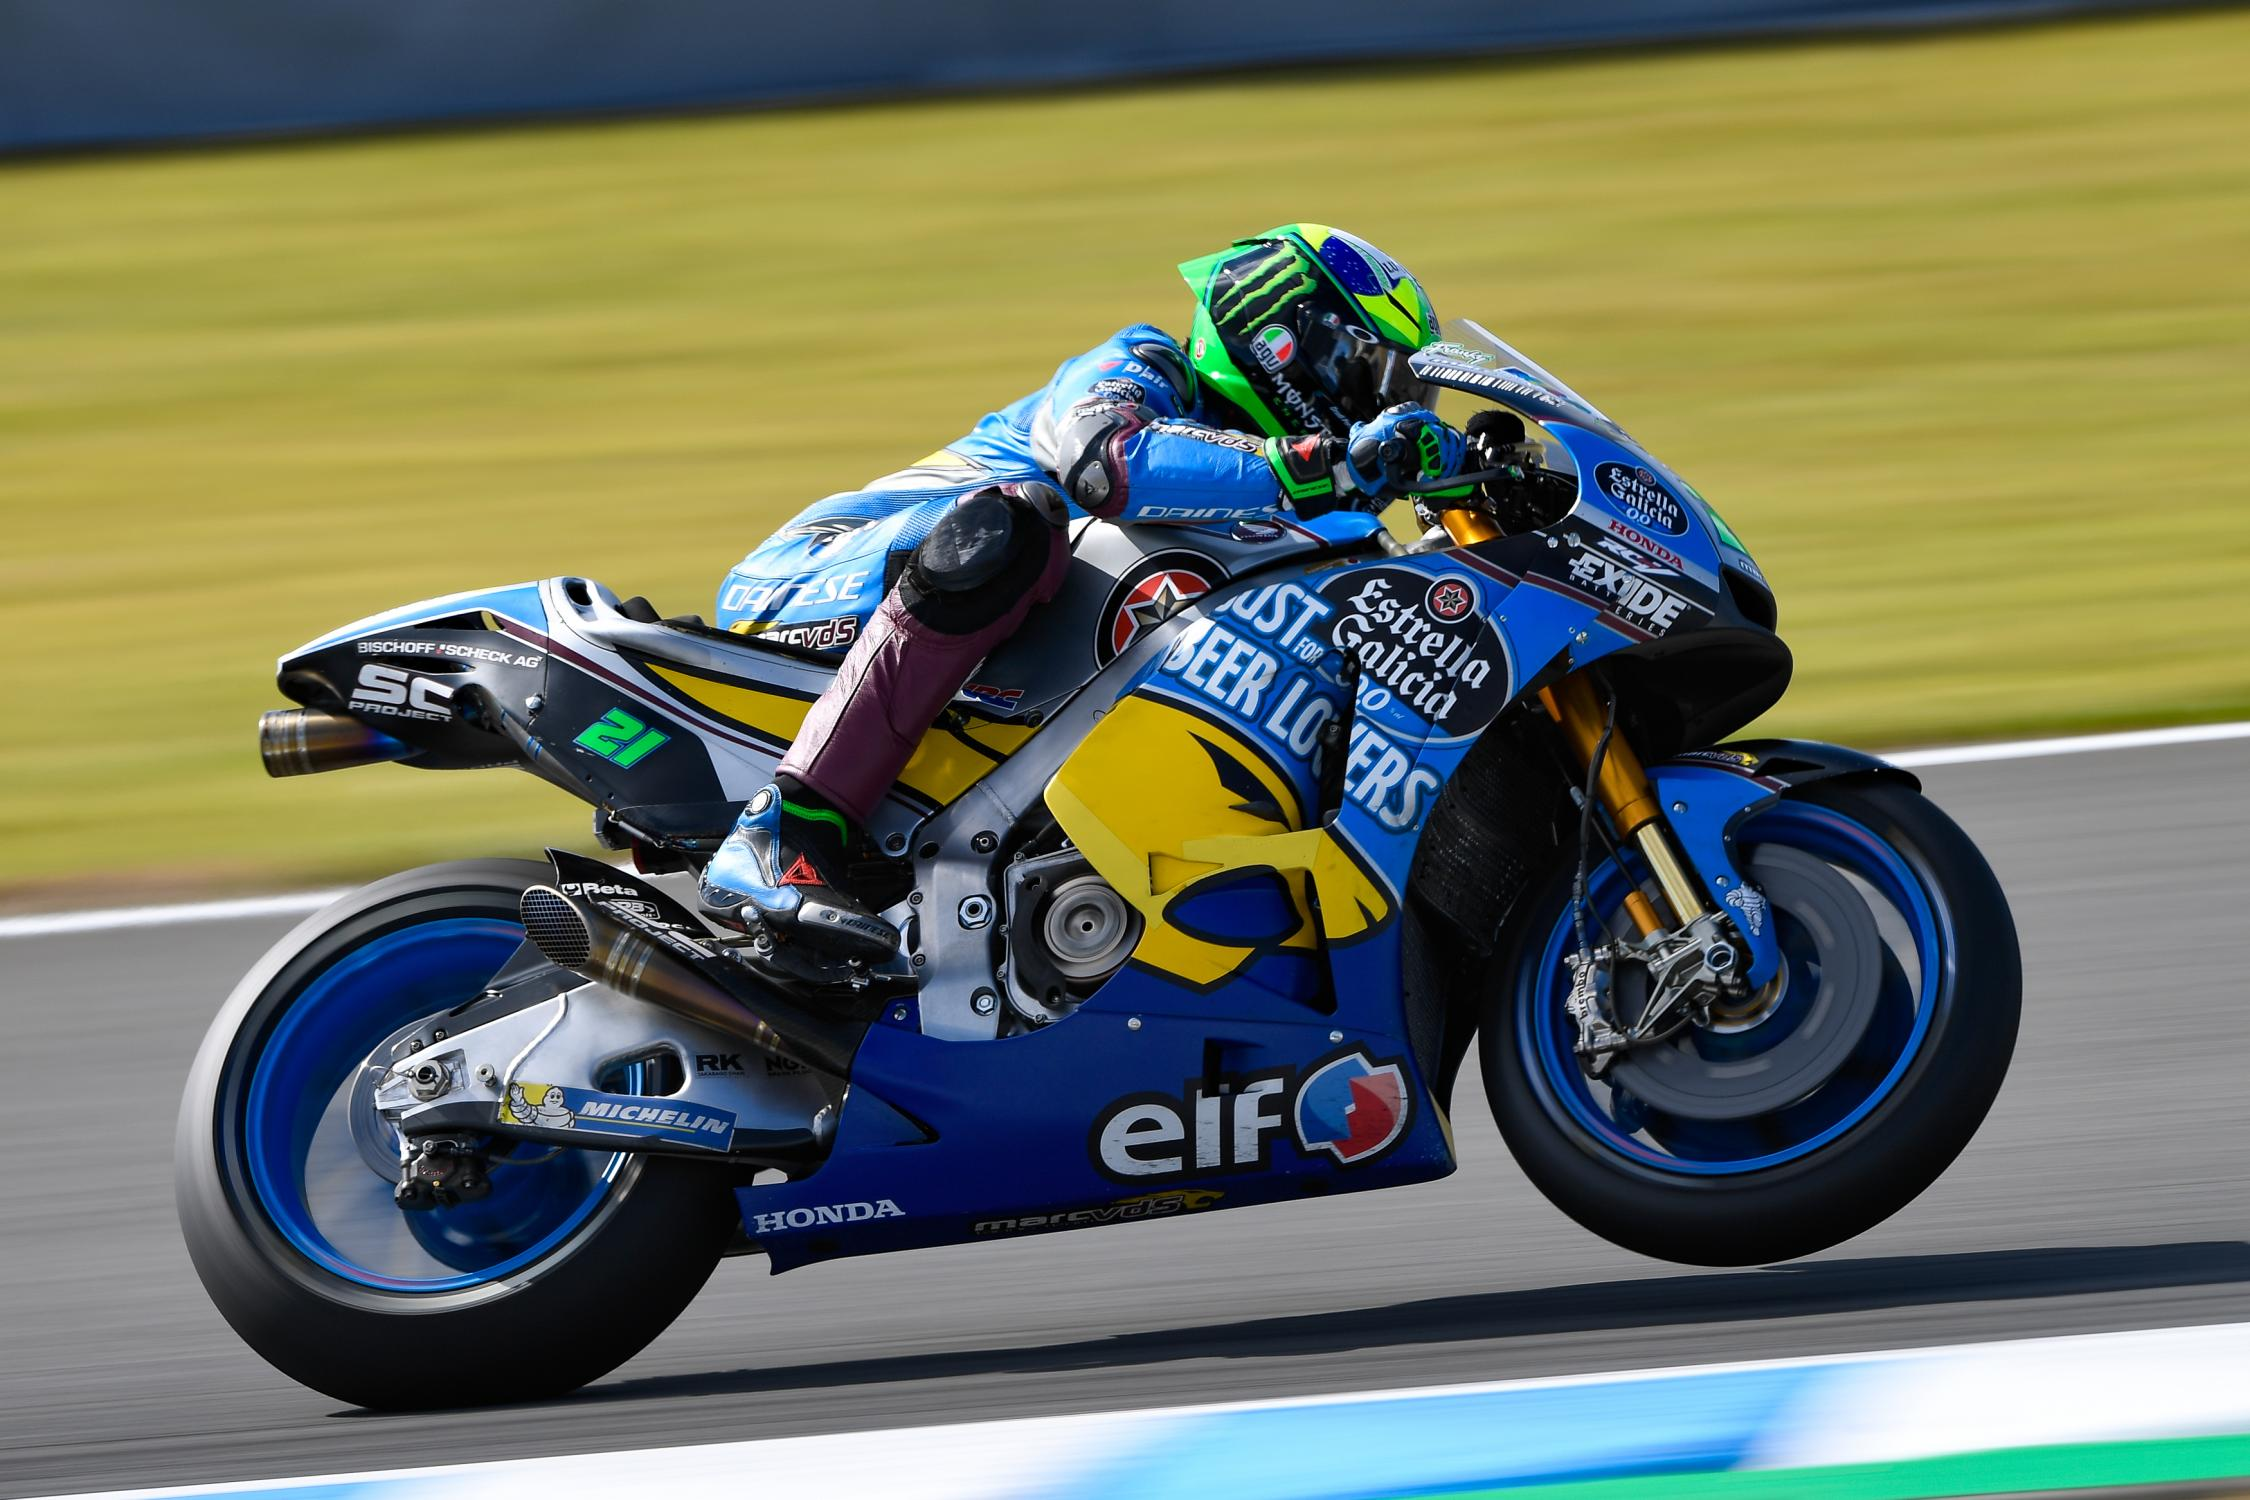 21-franco-morbidelli-ita_dsc8425.gallery_full_top_fullscreen.jpg